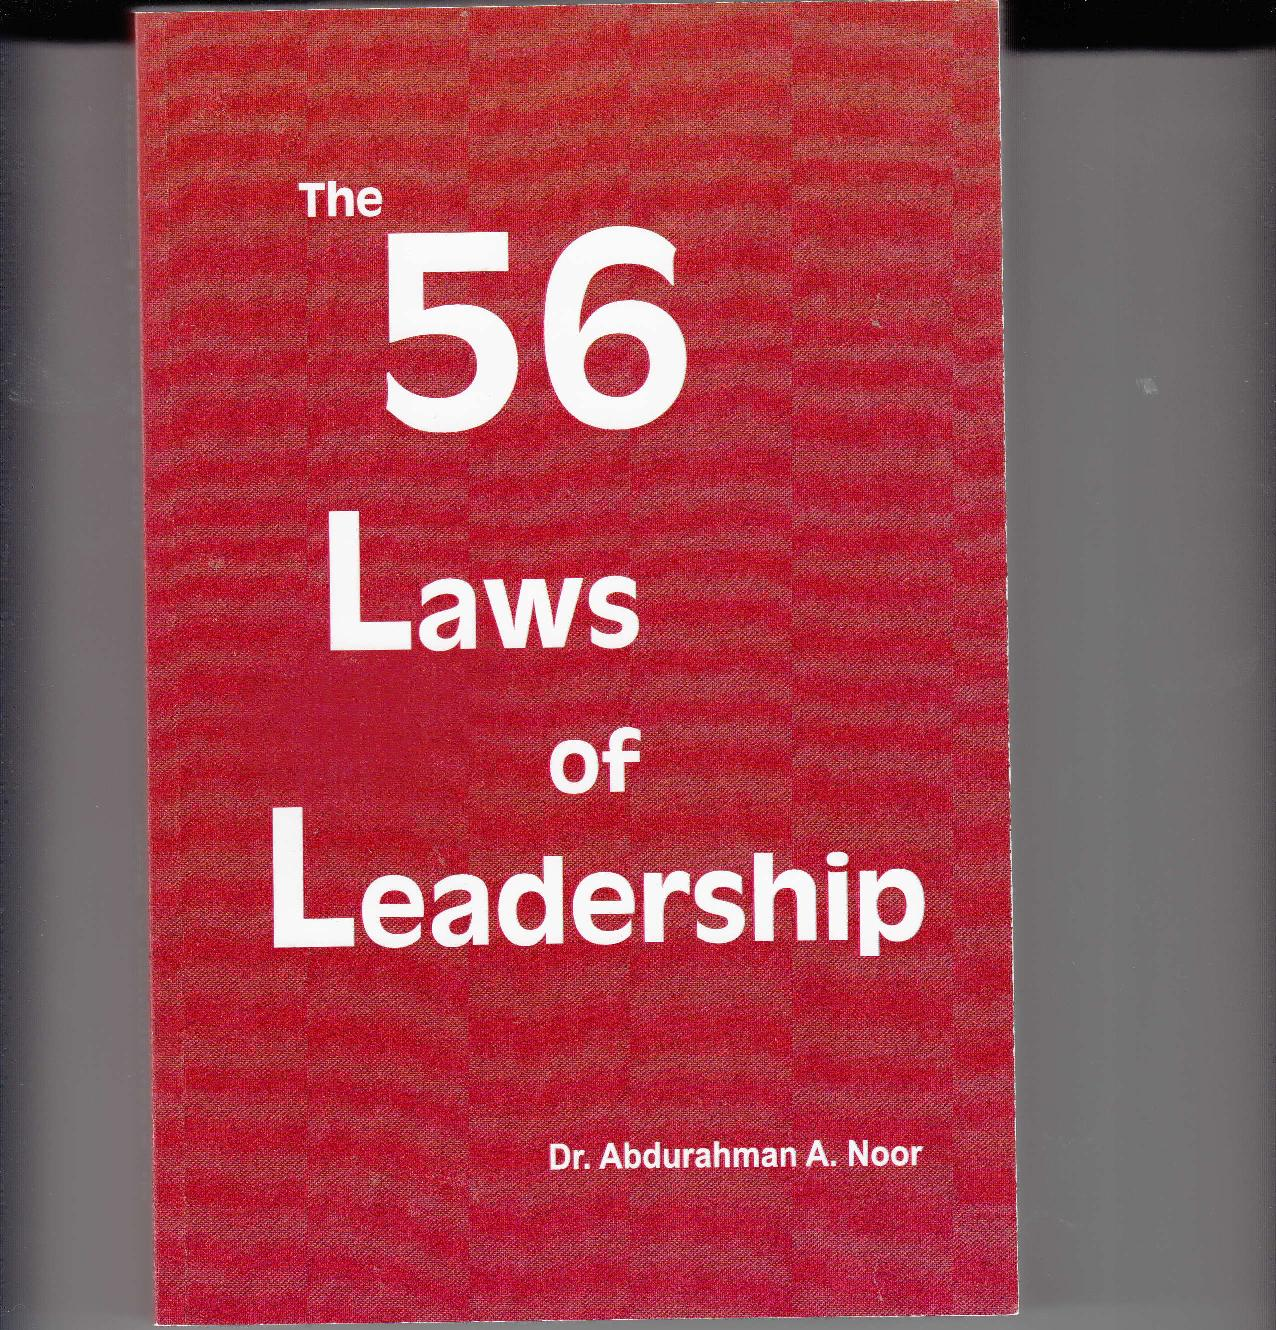 The 56 Laws of Leadership